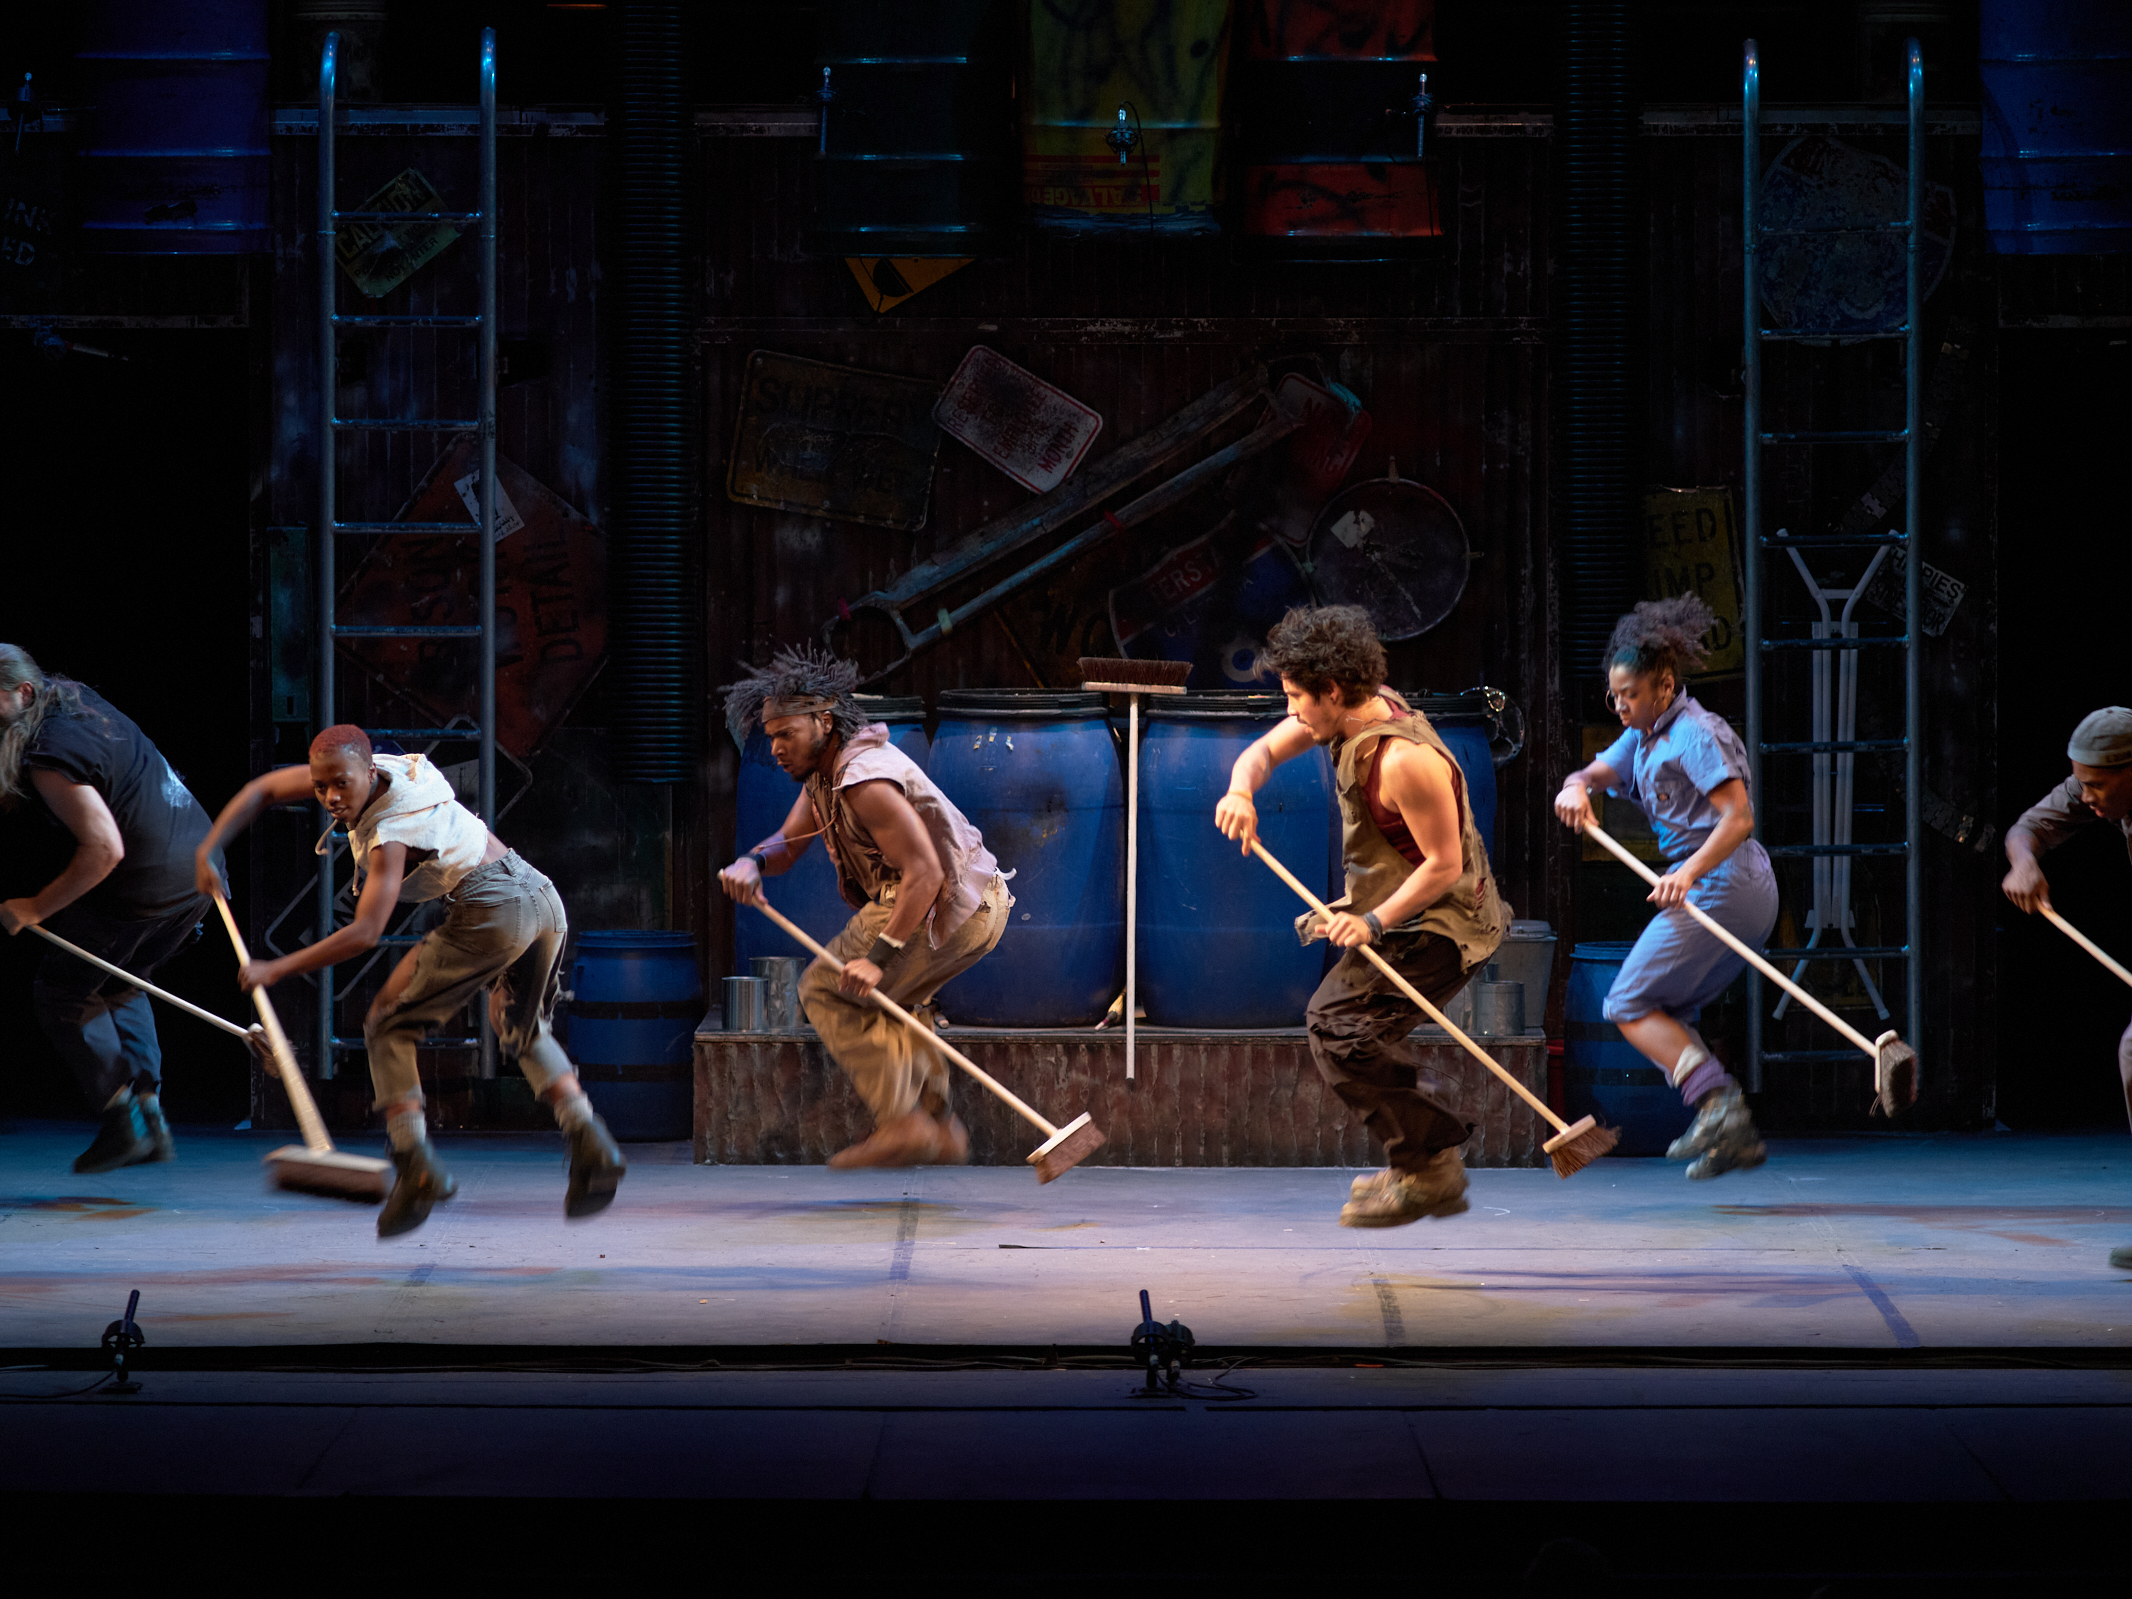 STOMP Dancing with brooms